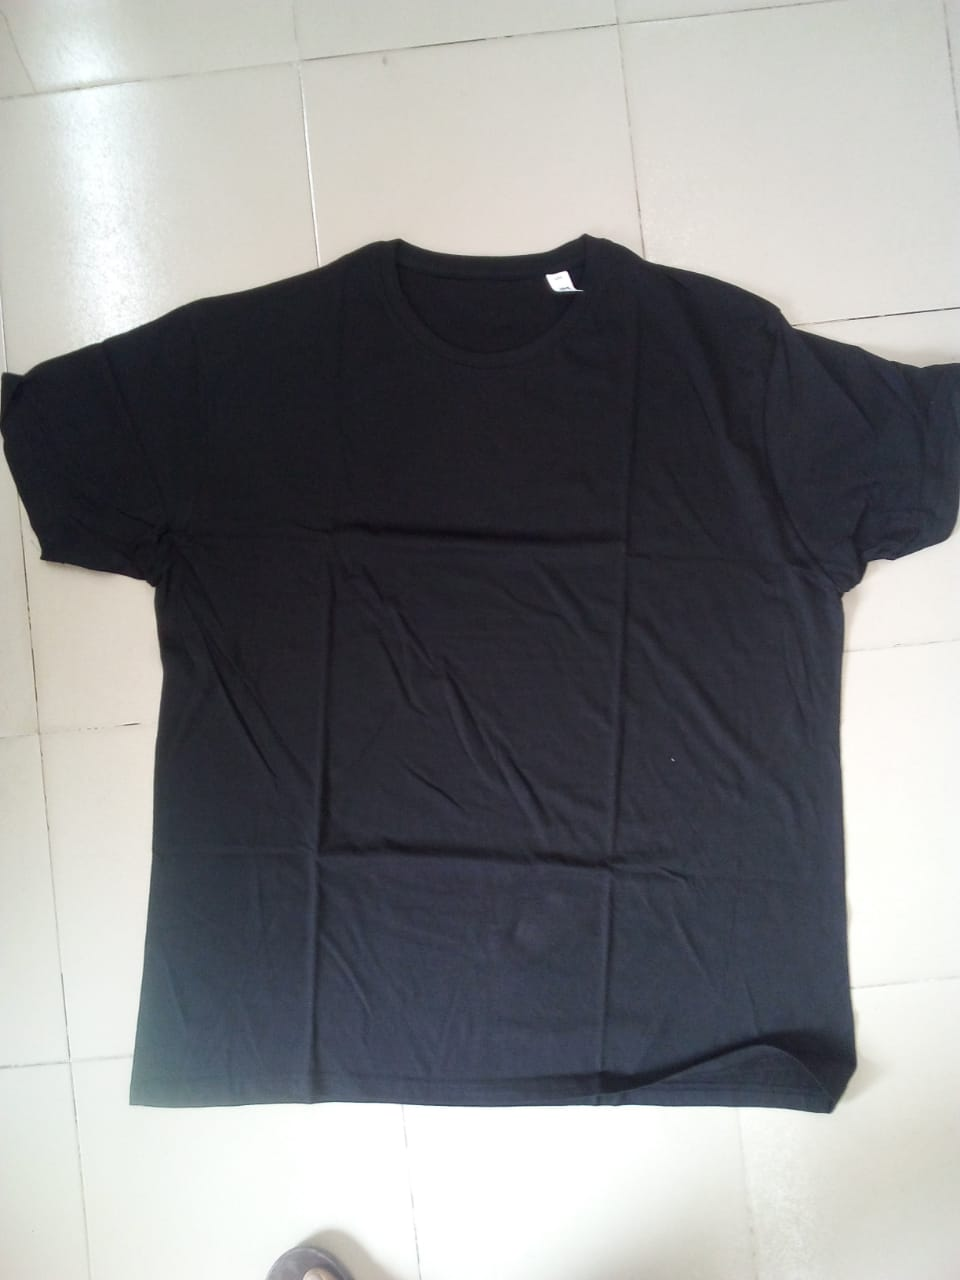 34521 - Sale offer for 133,300 pcs Mens T-shirt stock Bangladesh